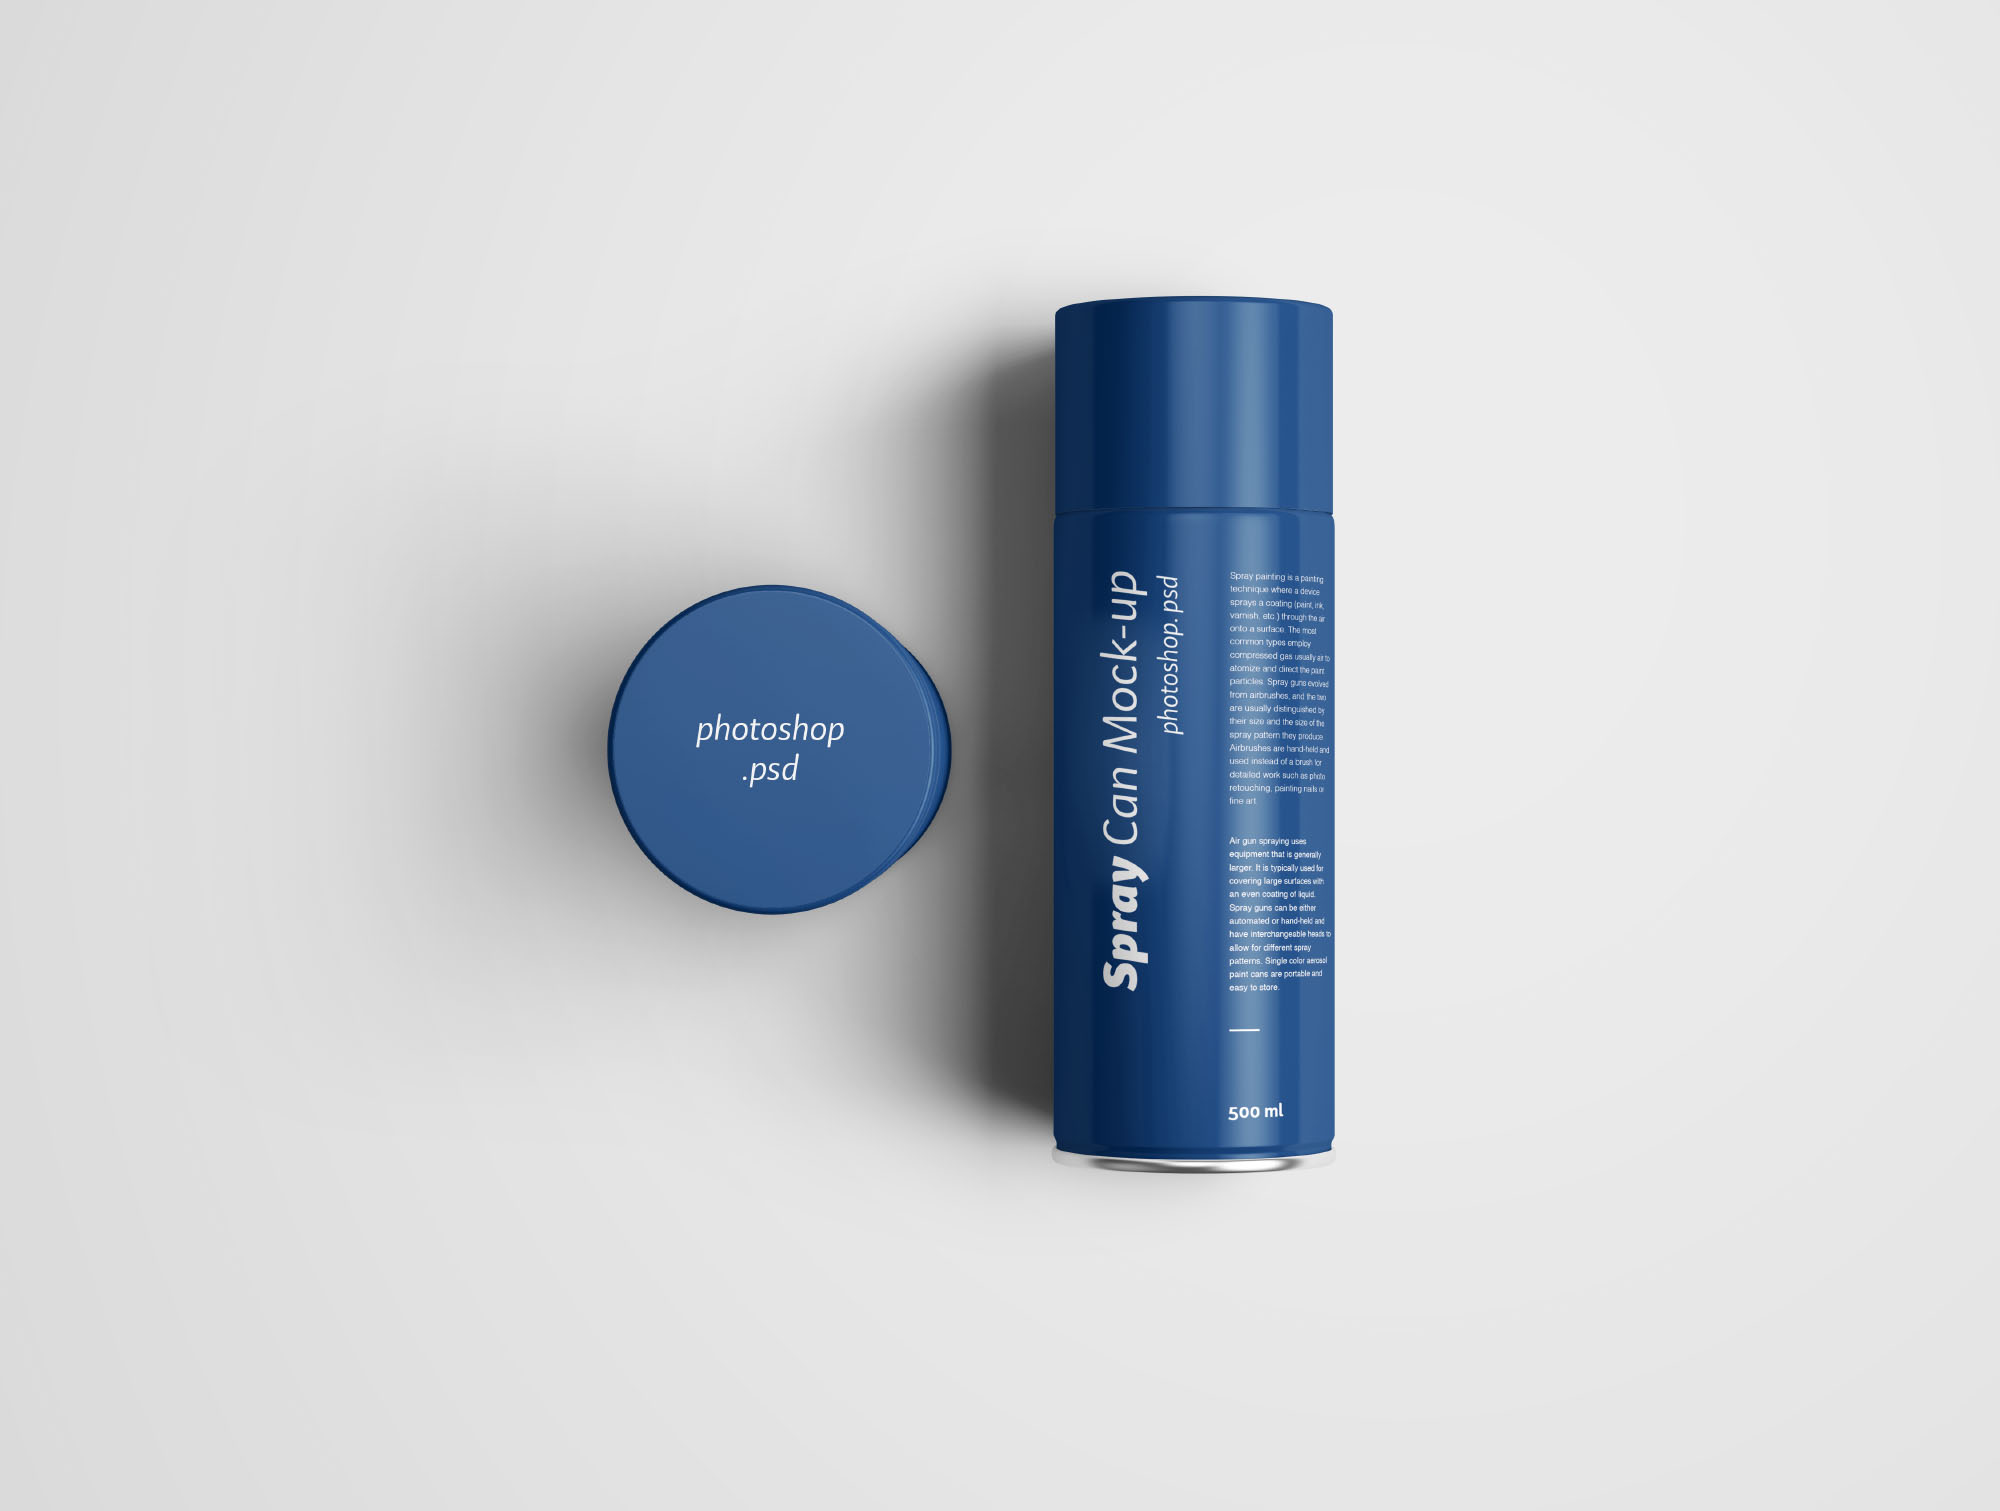 spray can mockup photoshop psd